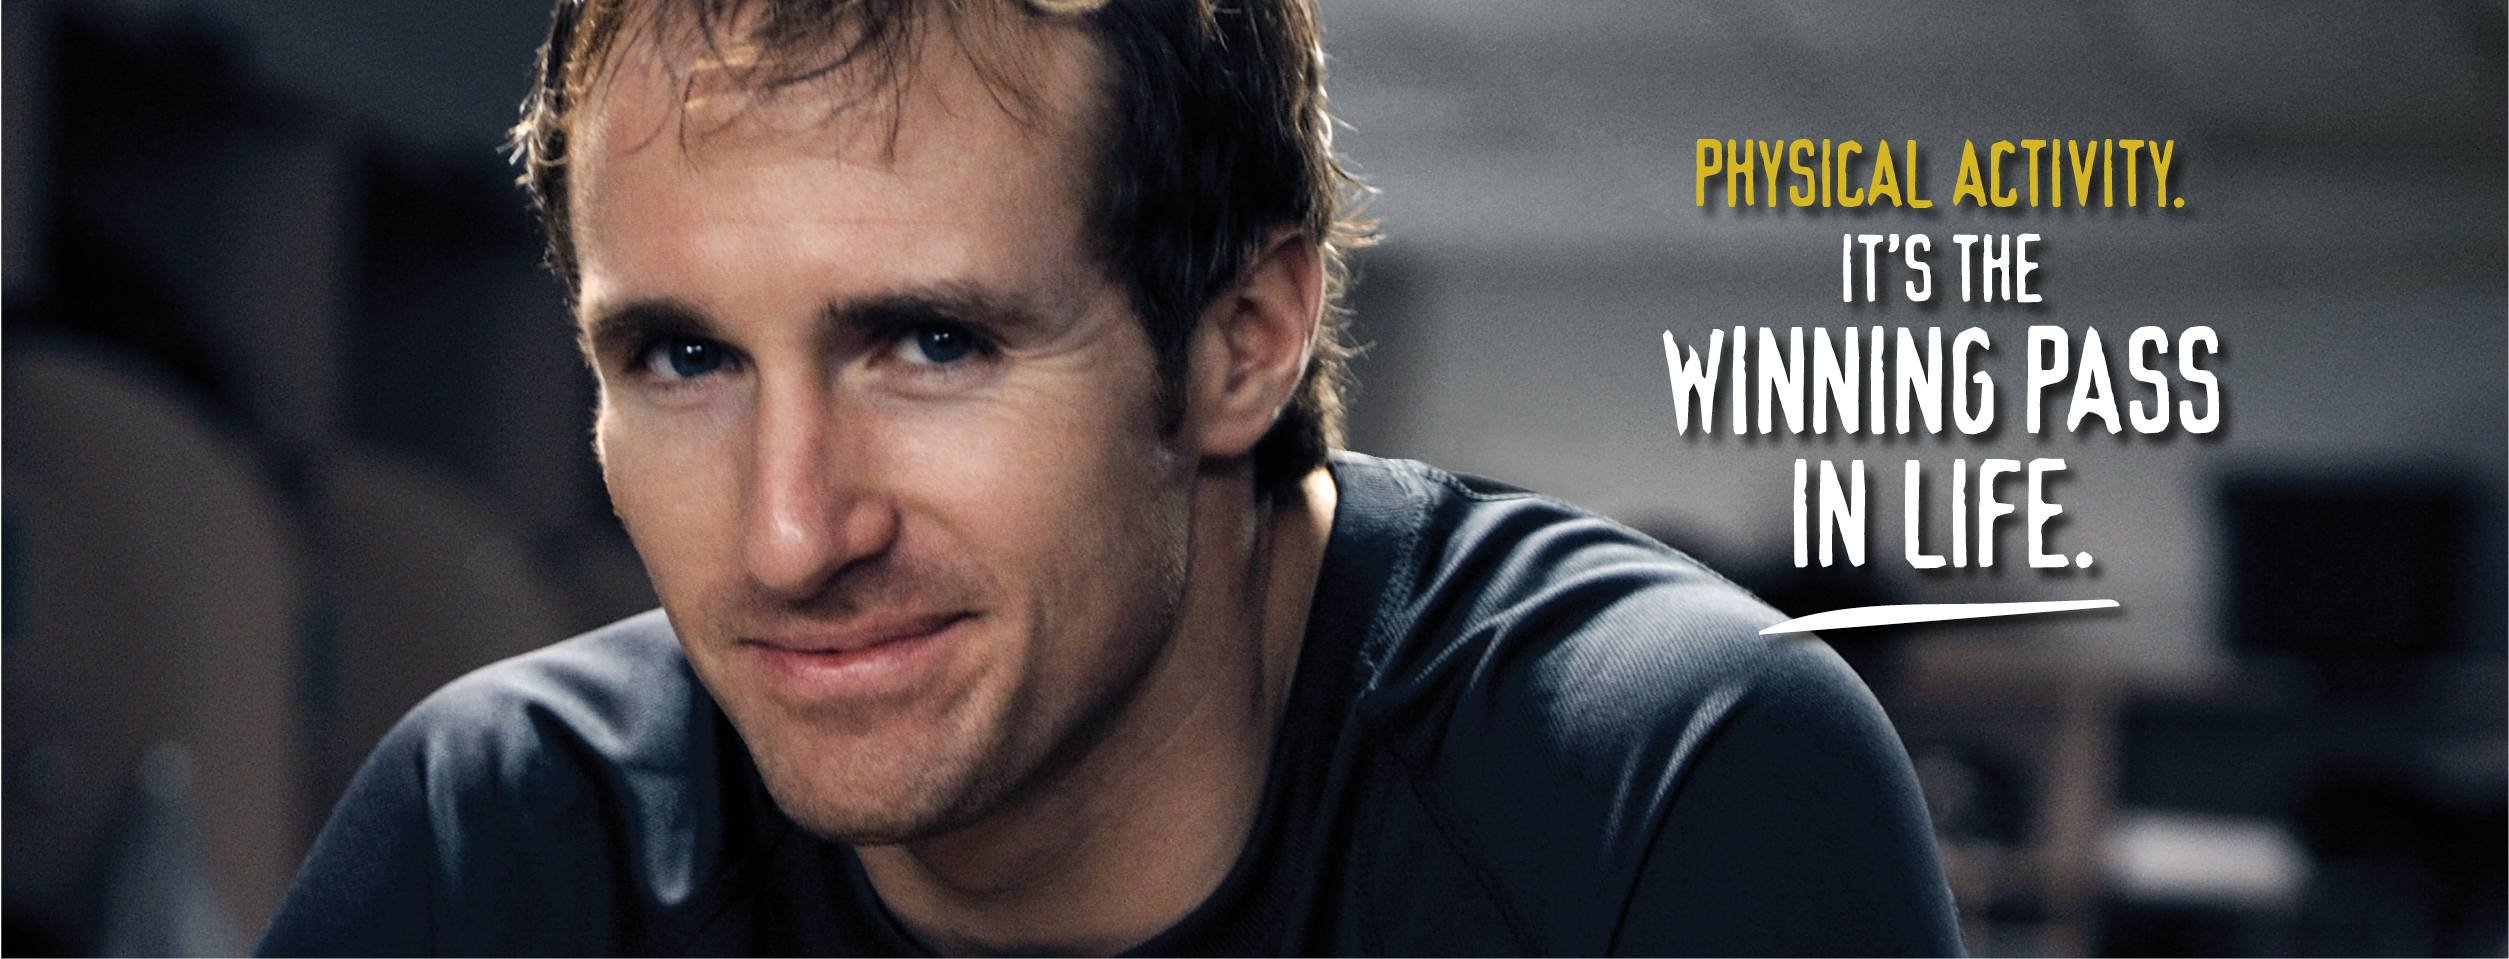 Drew Brees - Physical Activity - It's the Winning Pass in Life.